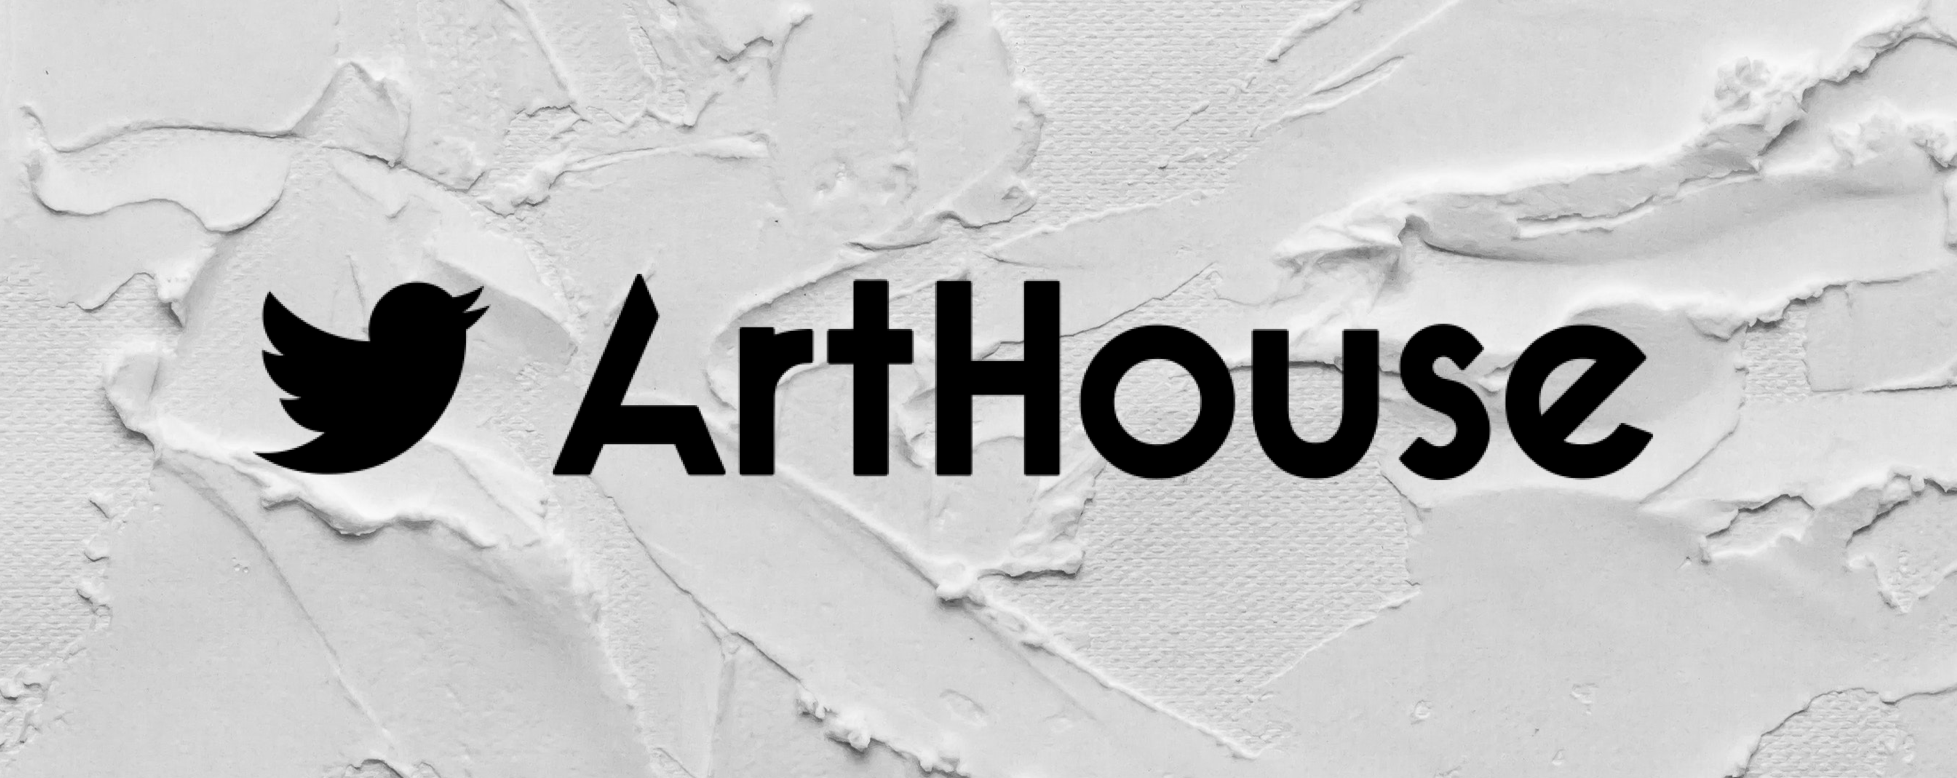 Twitter Launches ArtHouse to Help Brands Produce Better Content for the Platform